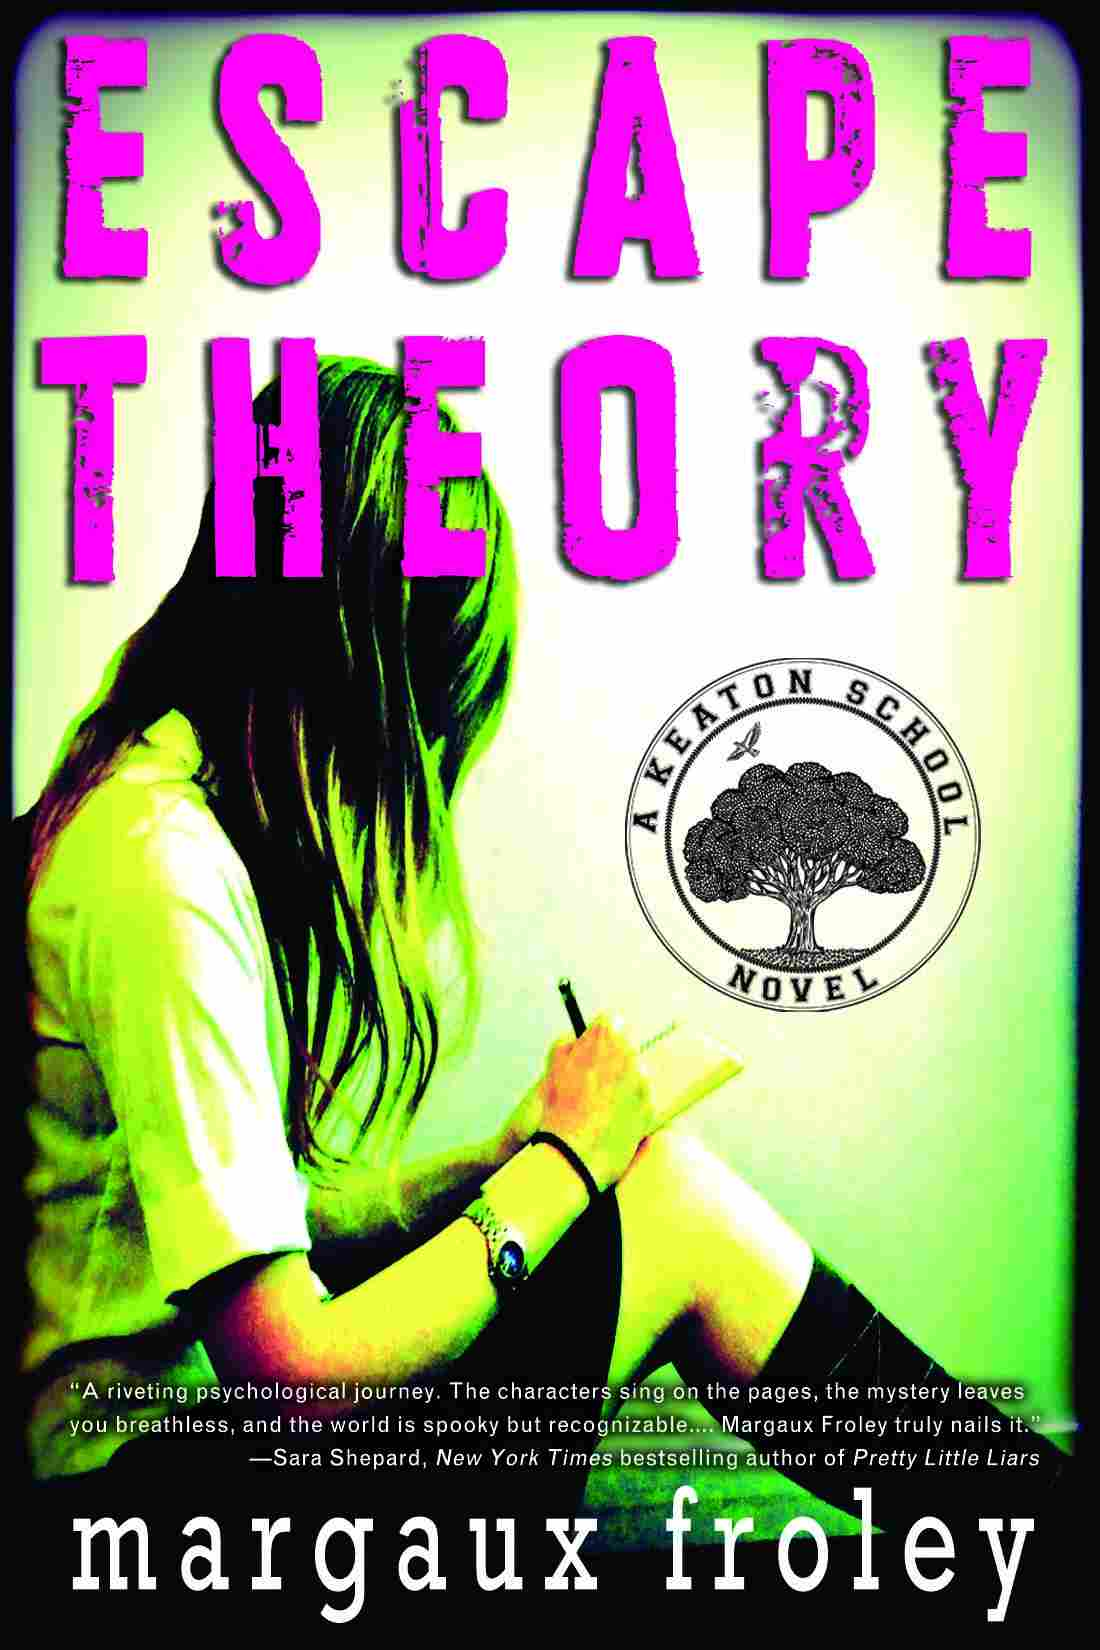 Escape Theory by Margaux Froley Book Review